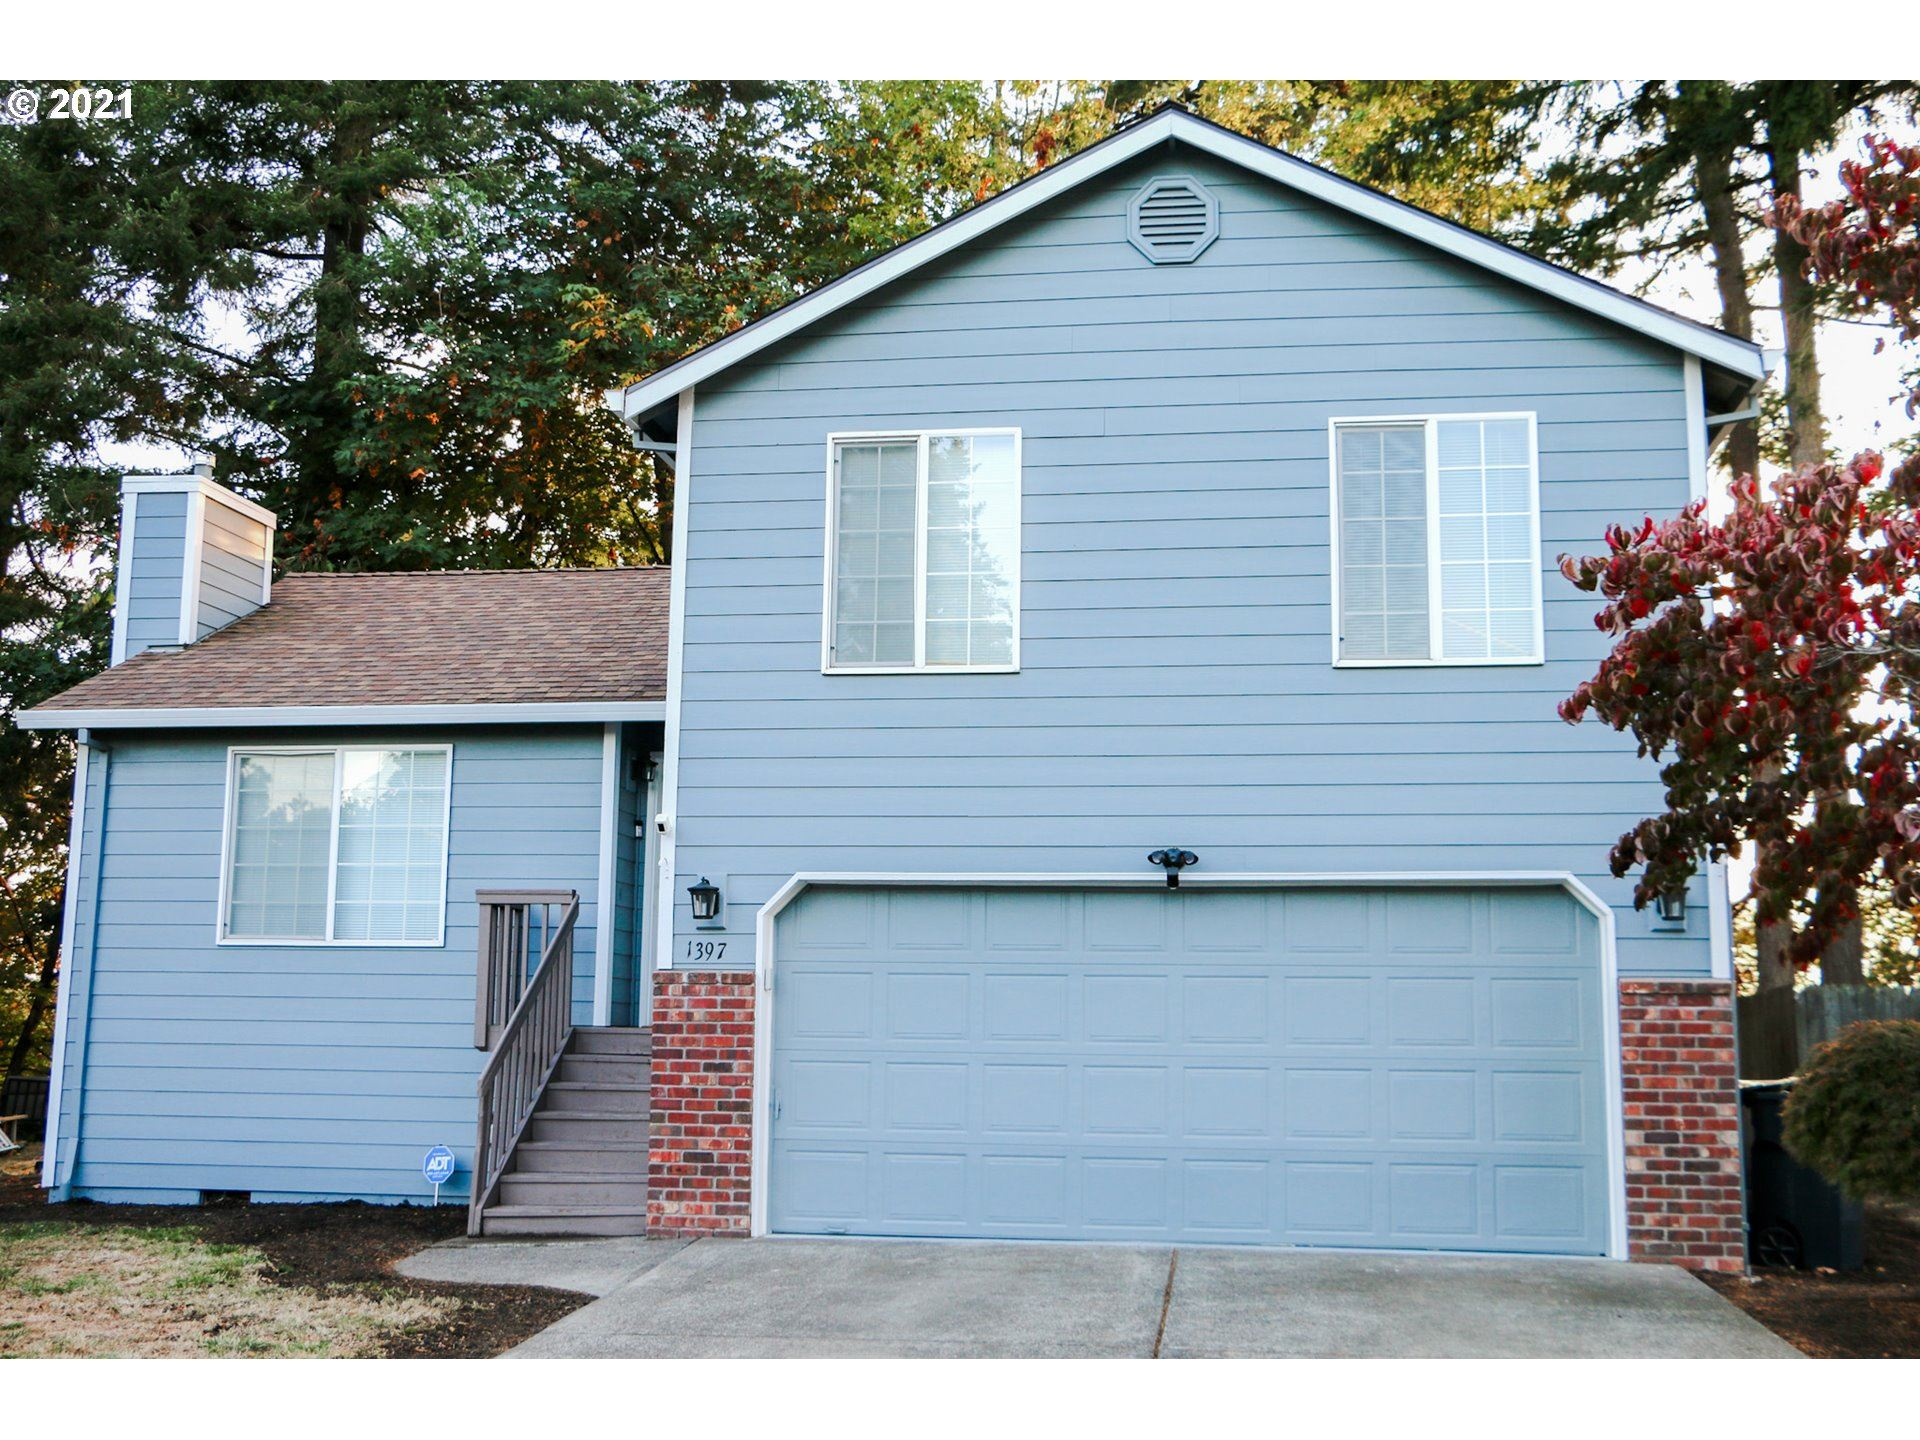 Photo of 1397 S BIRCH CT, Canby, OR 97013 (MLS # 21424598)